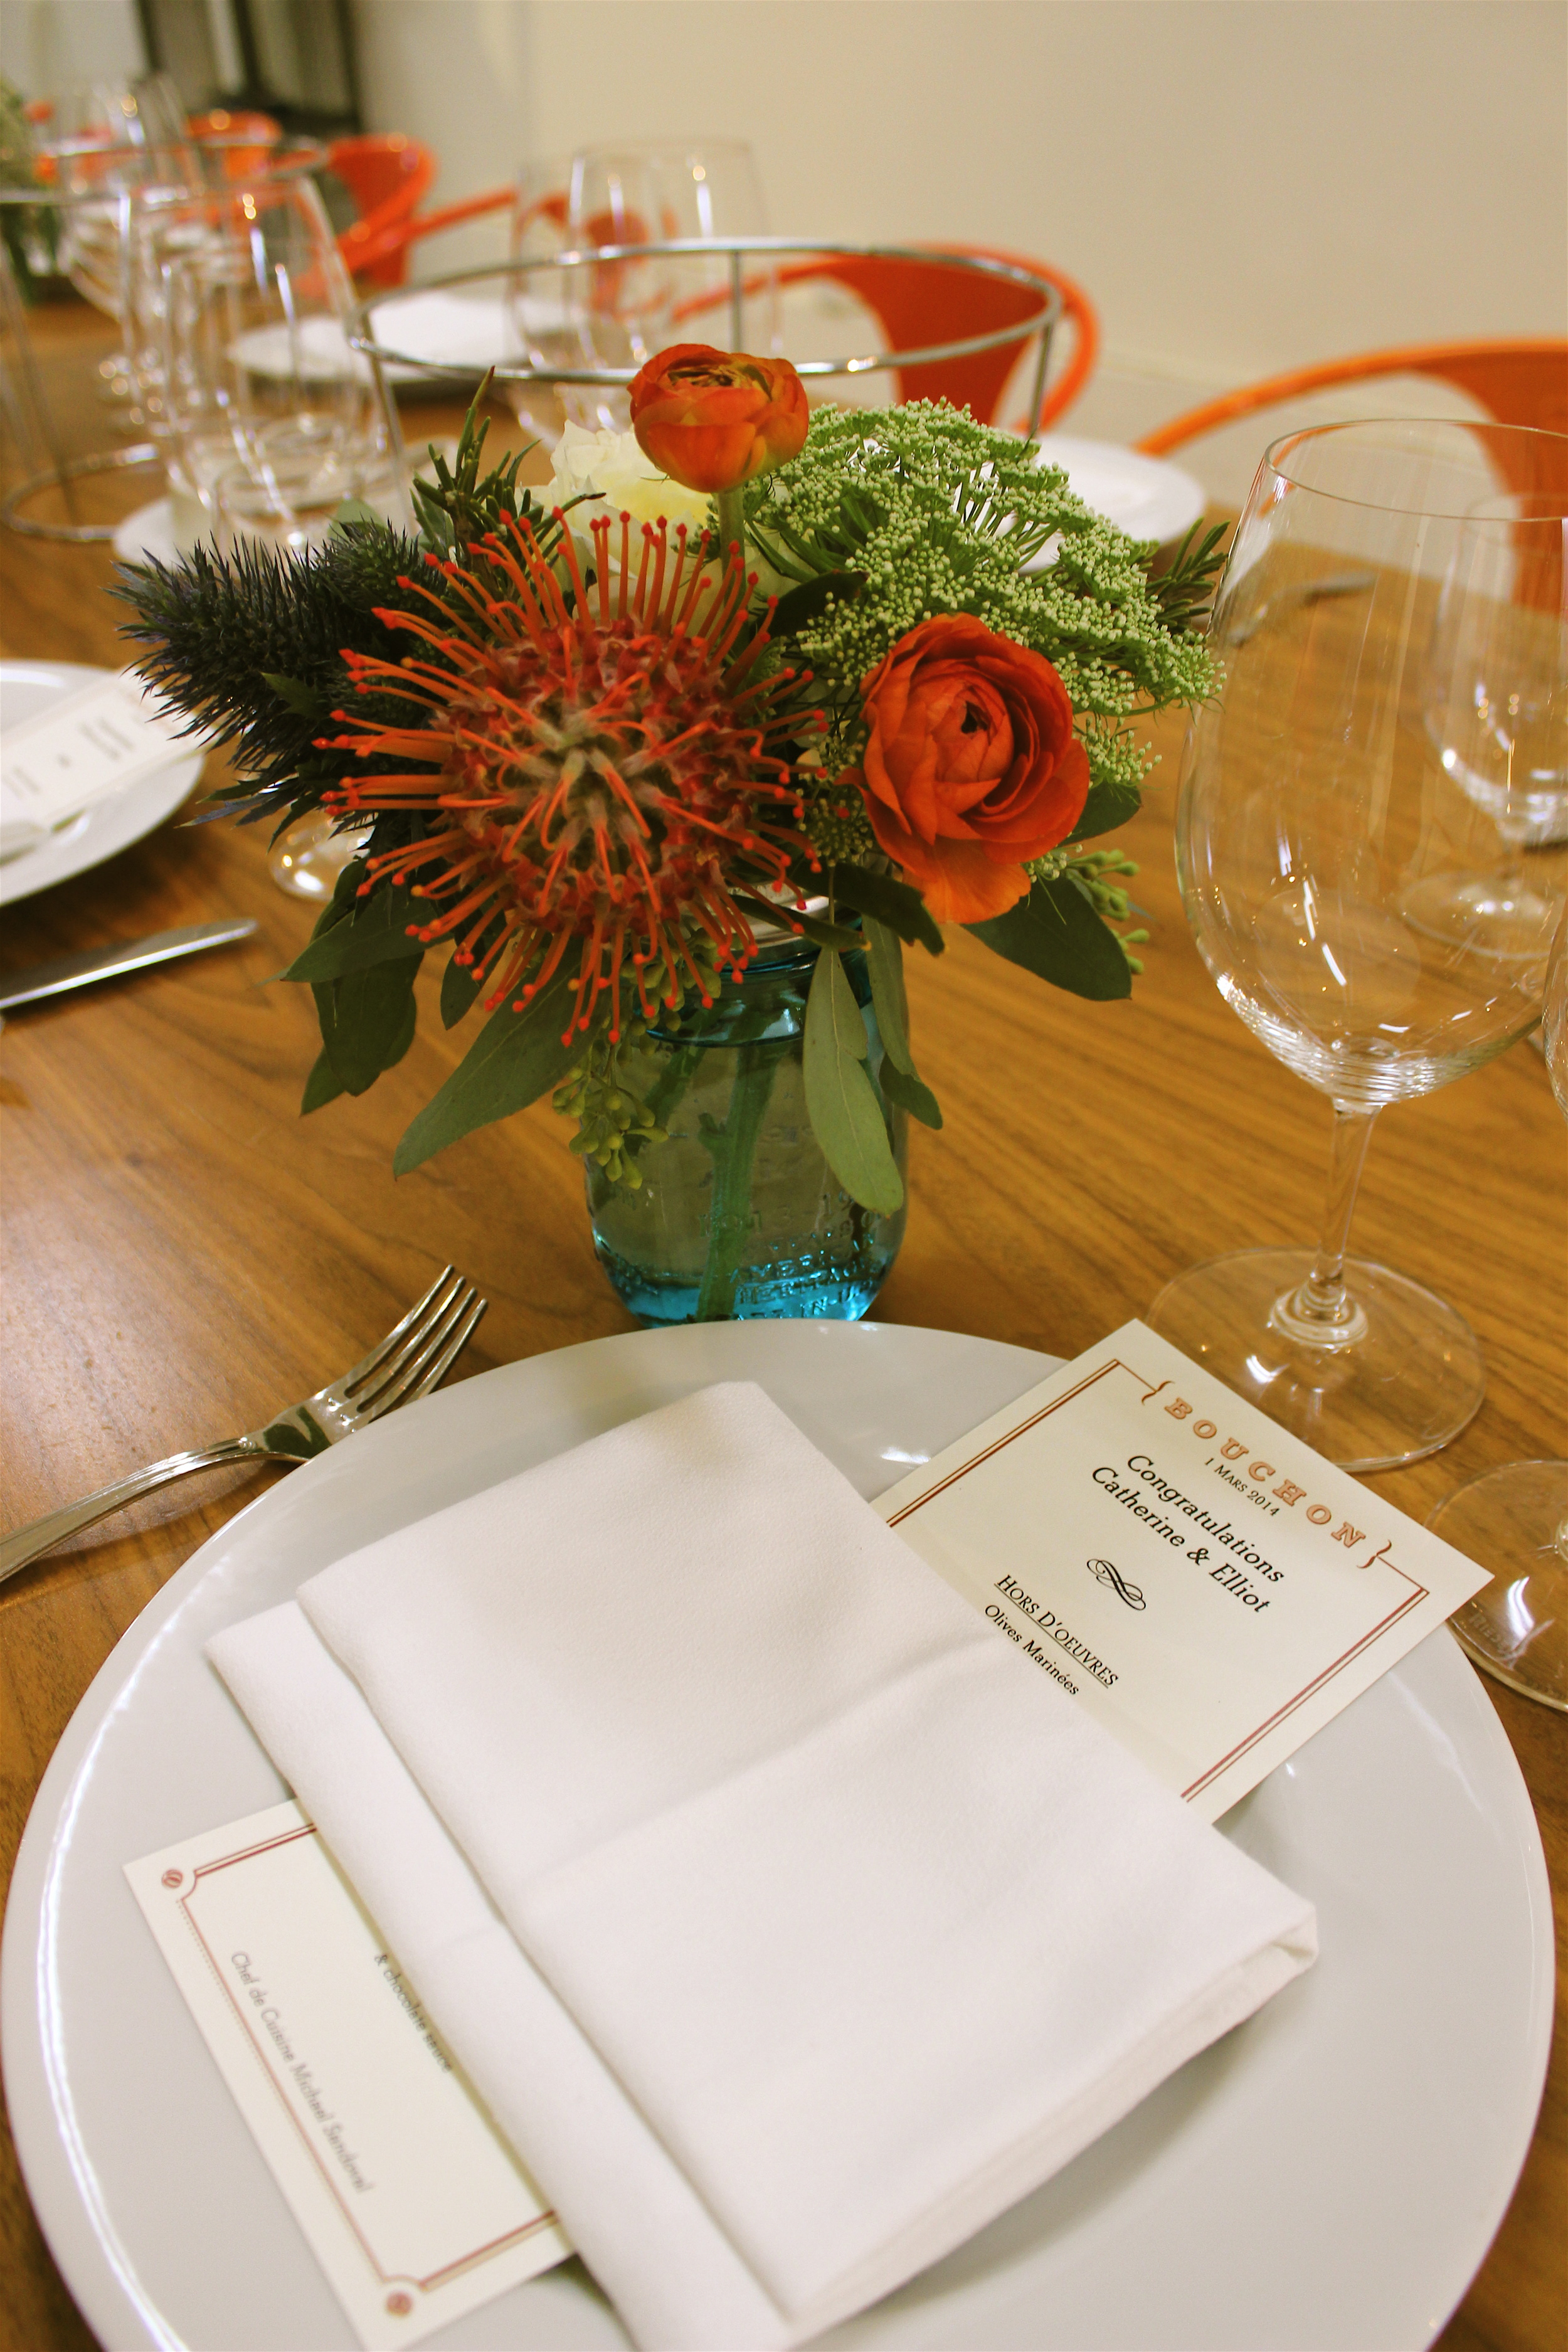 Menus and place settings